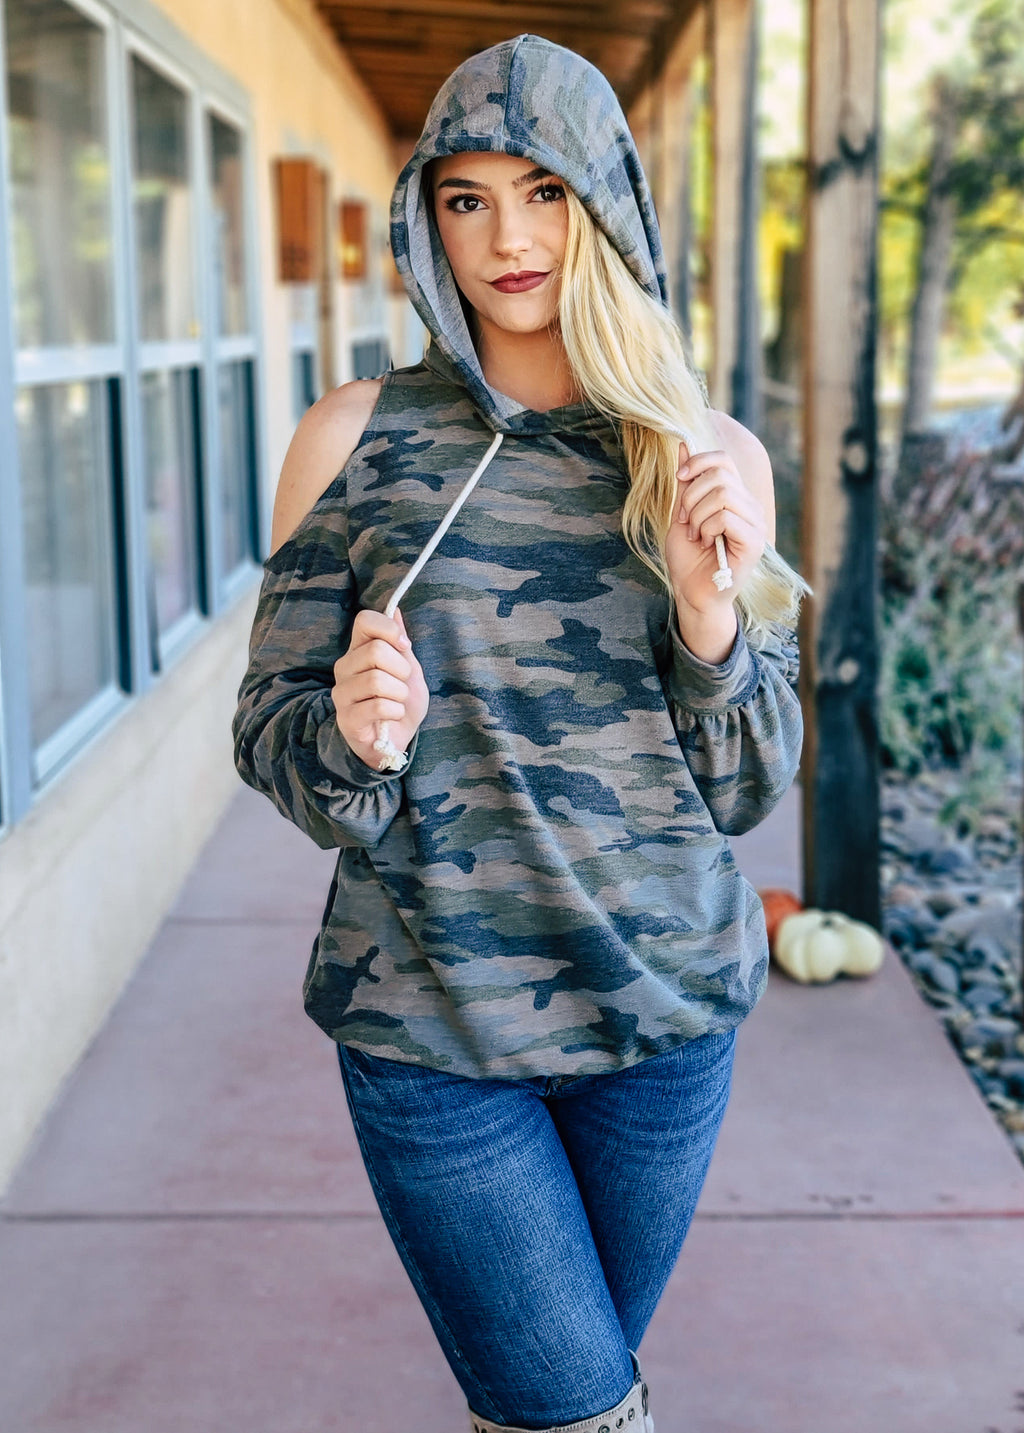 Camo Cold Shoulder Hoodie on blonde model with denim jeans